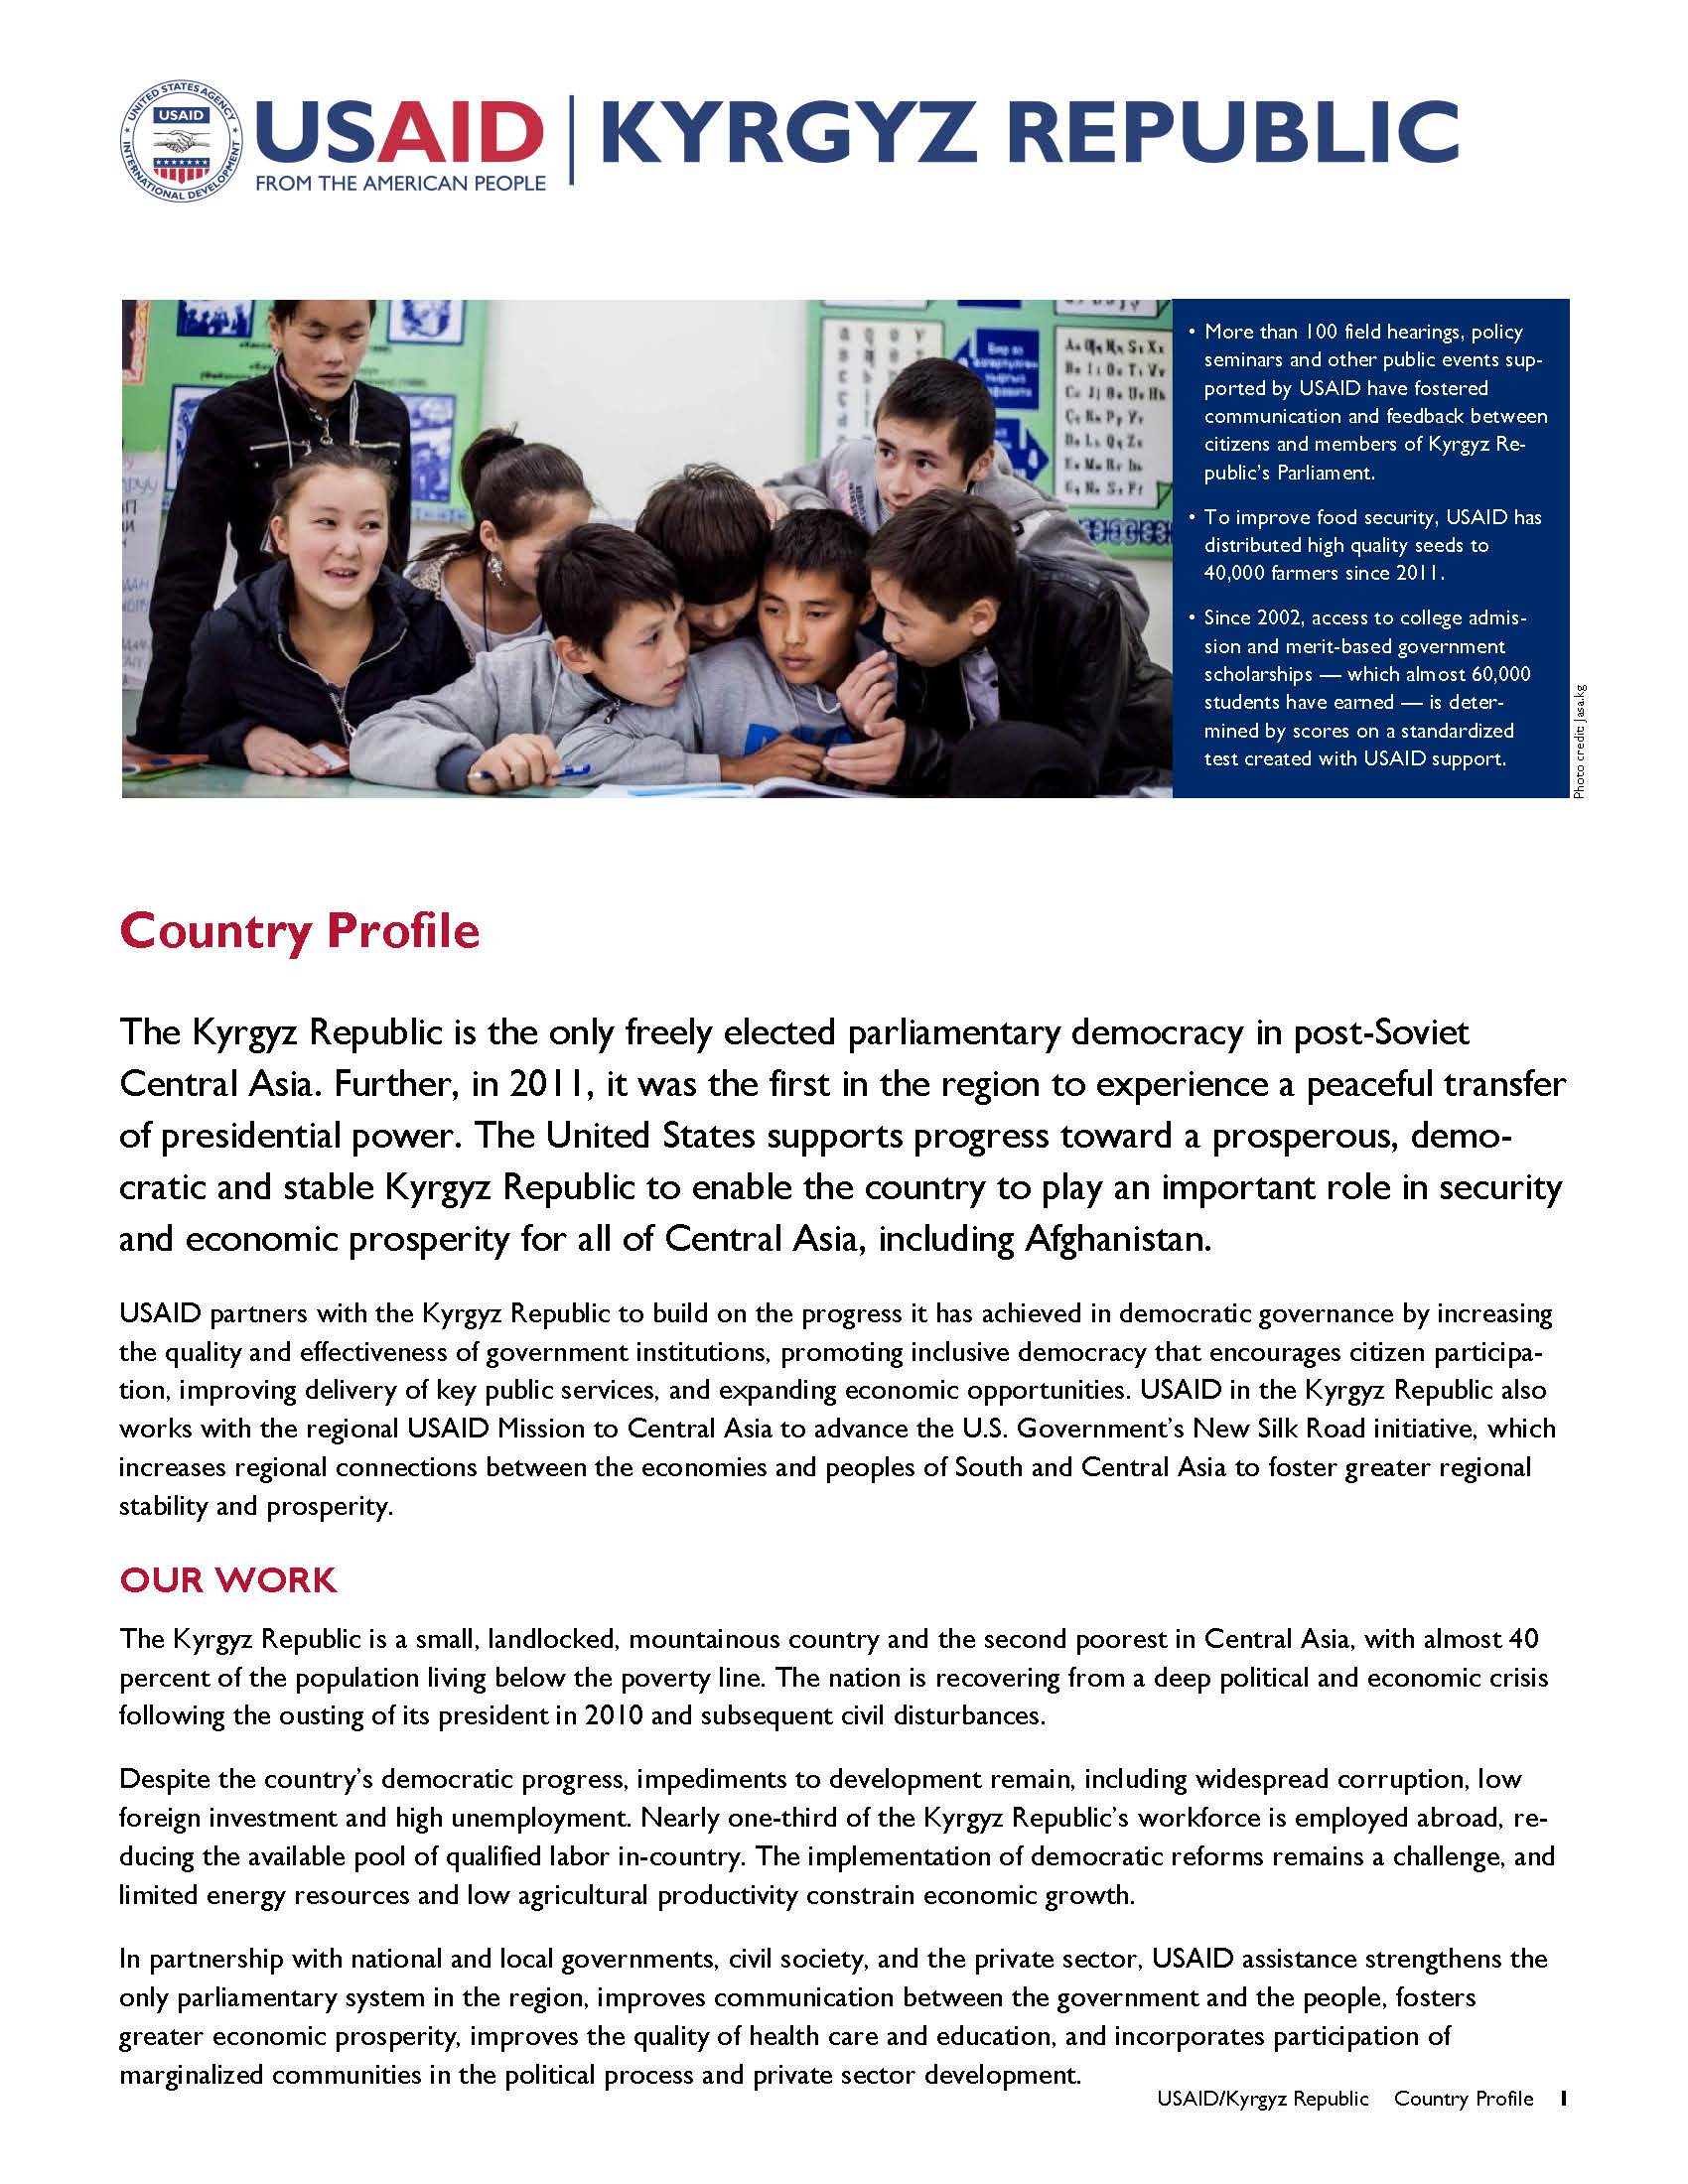 Kyrgyz Republic Country Profile 2014